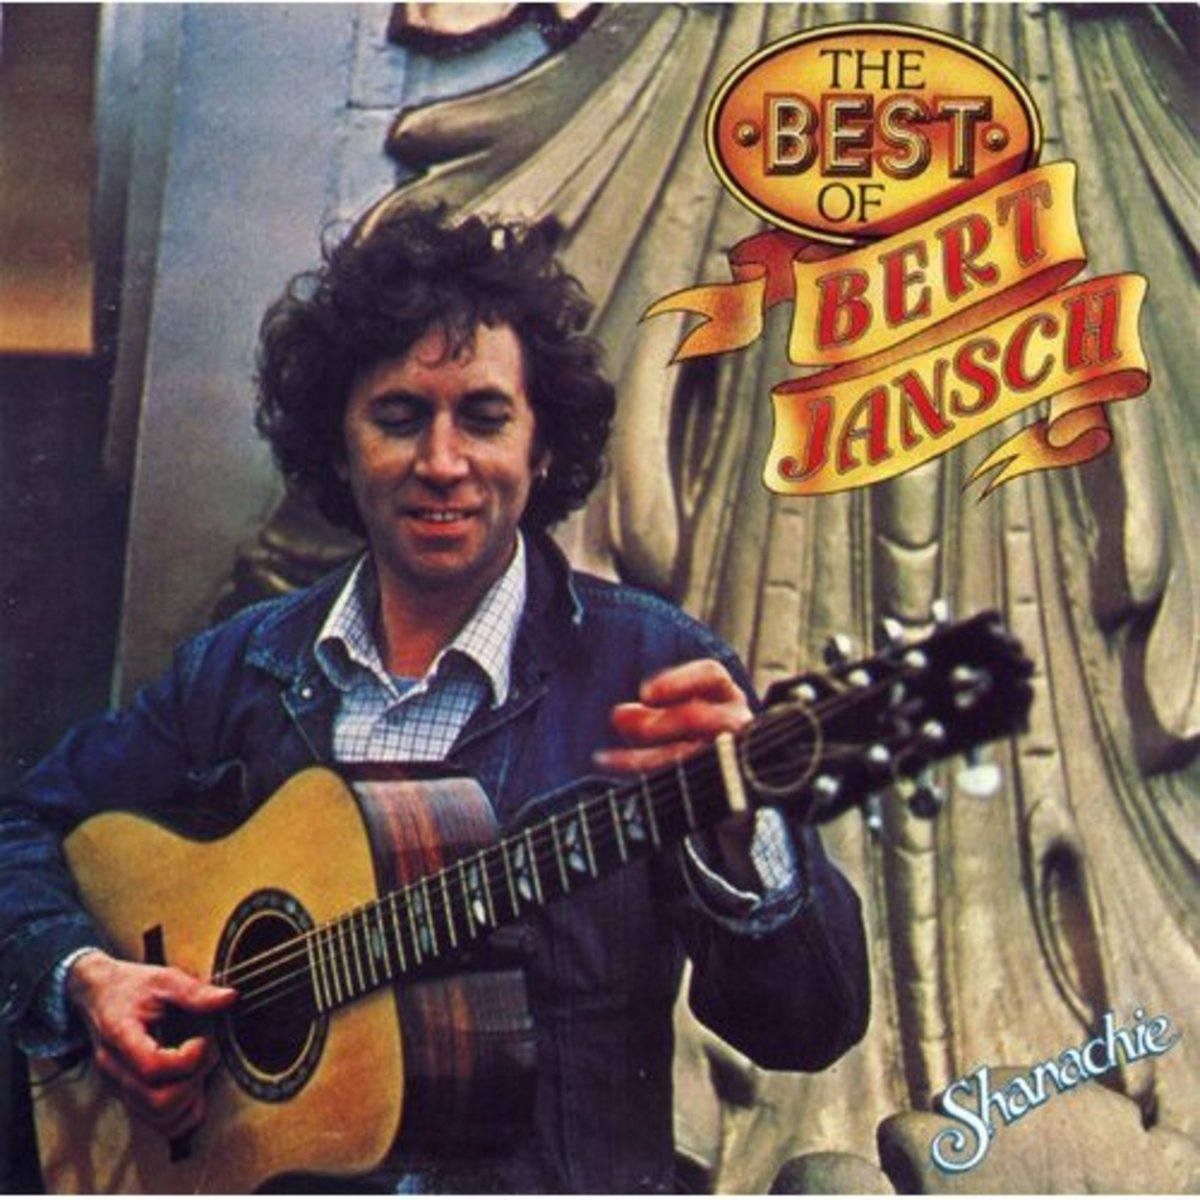 Bert Jansch never sued Led Zeppelin but he was unhappy about not being credited on songs his work inspired